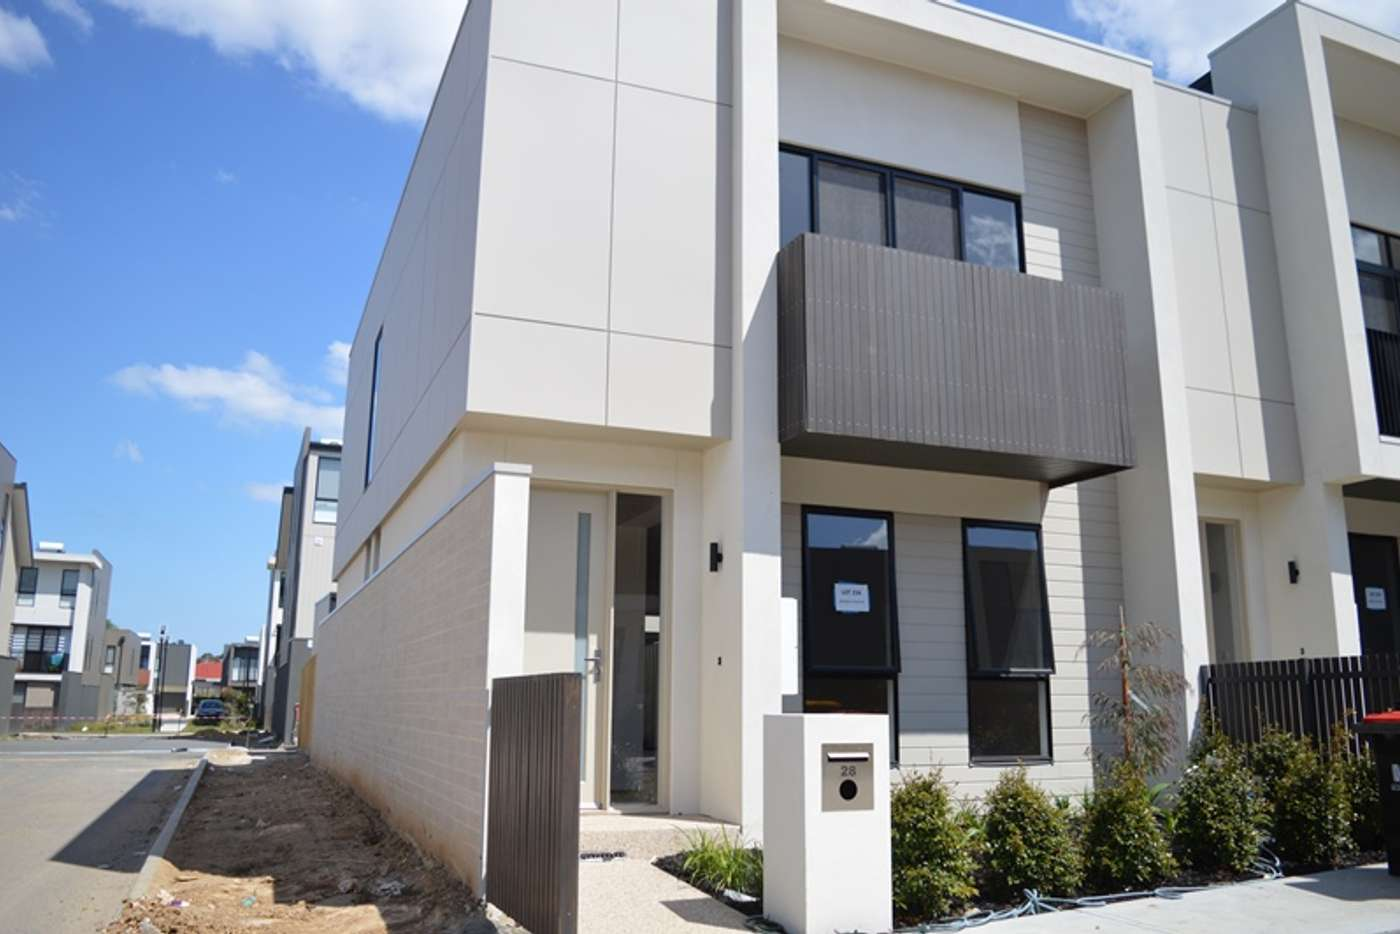 Main view of Homely townhouse listing, 28 Mulberry Avenue, Cheltenham VIC 3192